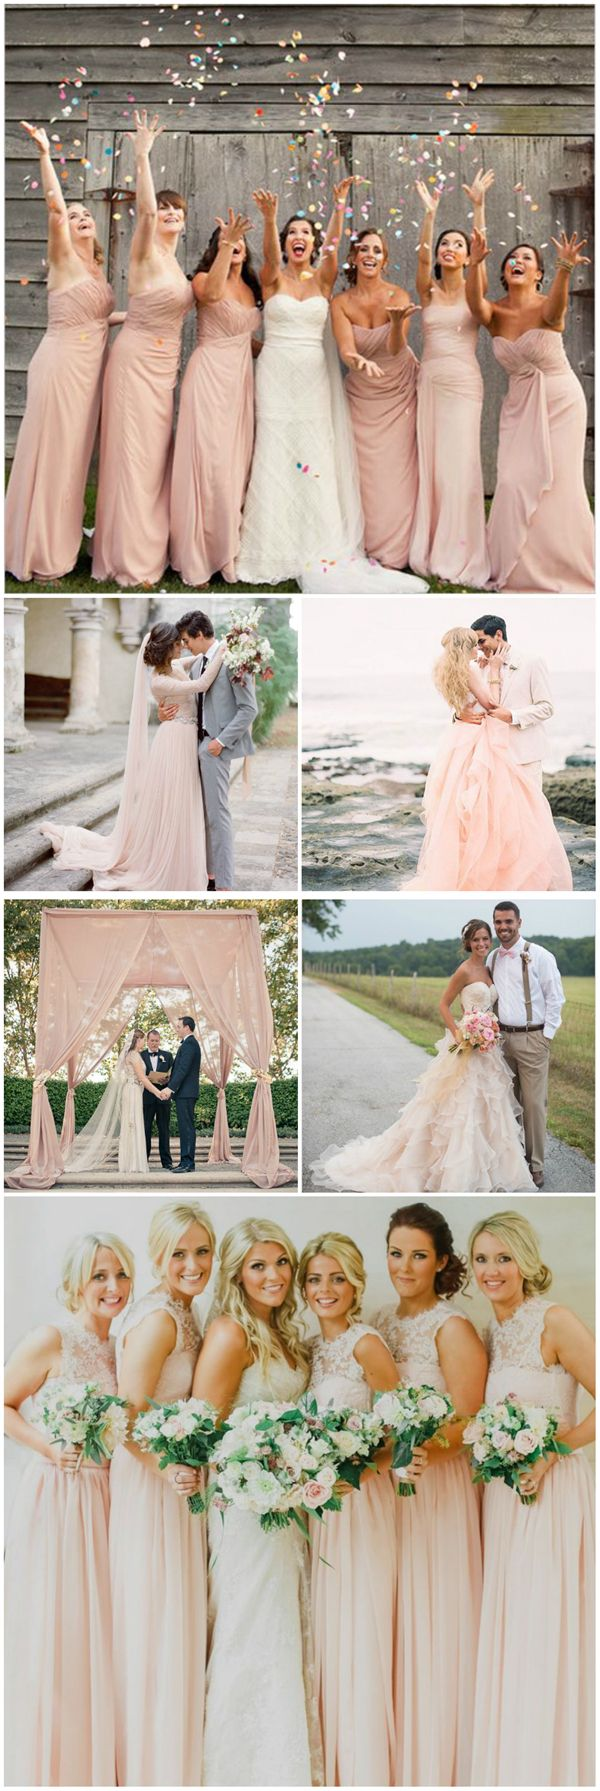 247 best wedding ideas images on pinterest wedding places wedding elegant pink wedding photography ideas junglespirit Gallery